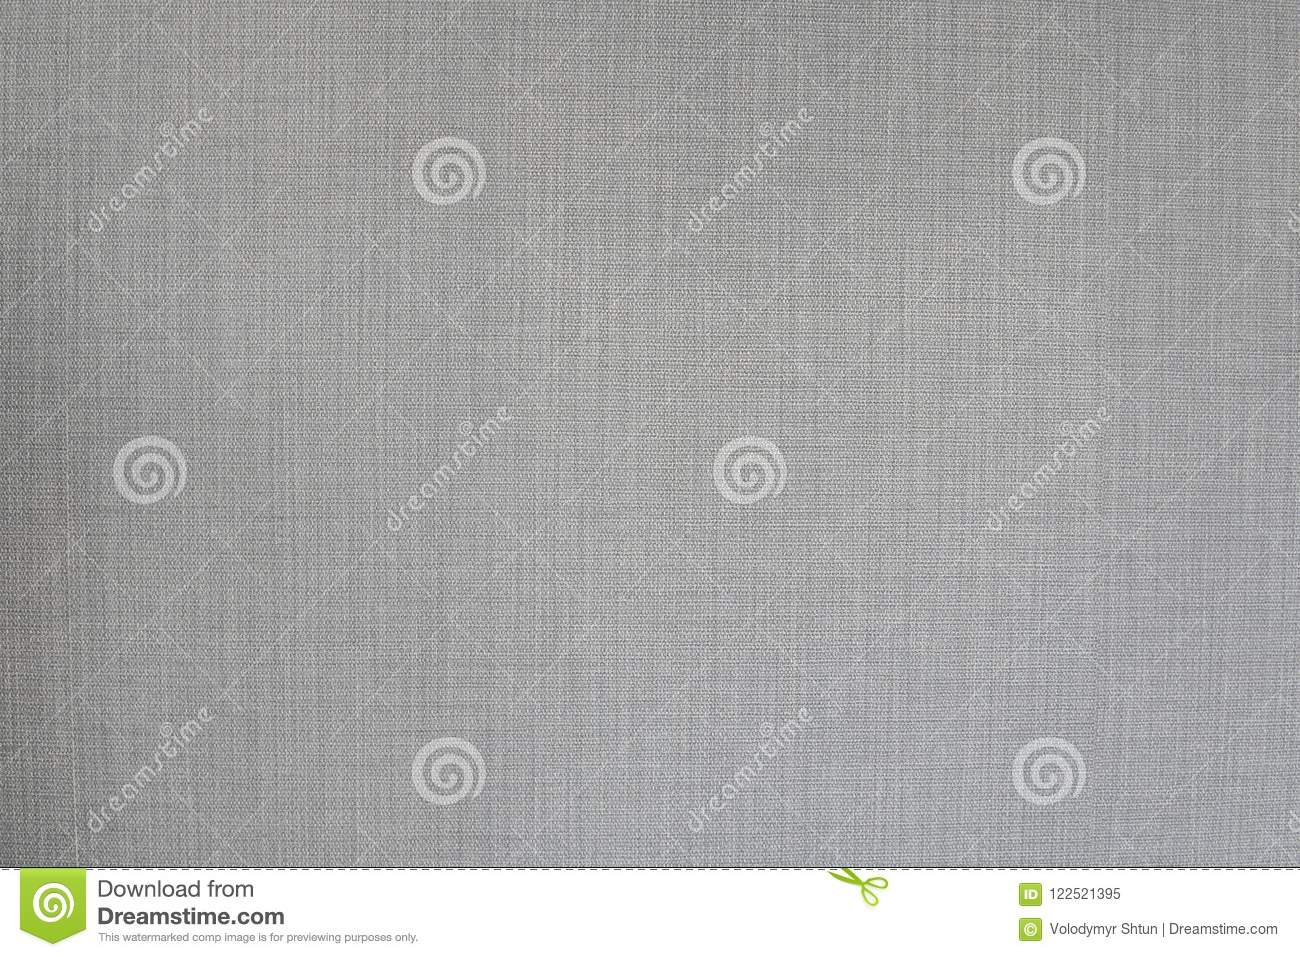 Grey neutral textile texture, often used for furniture covers, pillows, chairs or sofas.